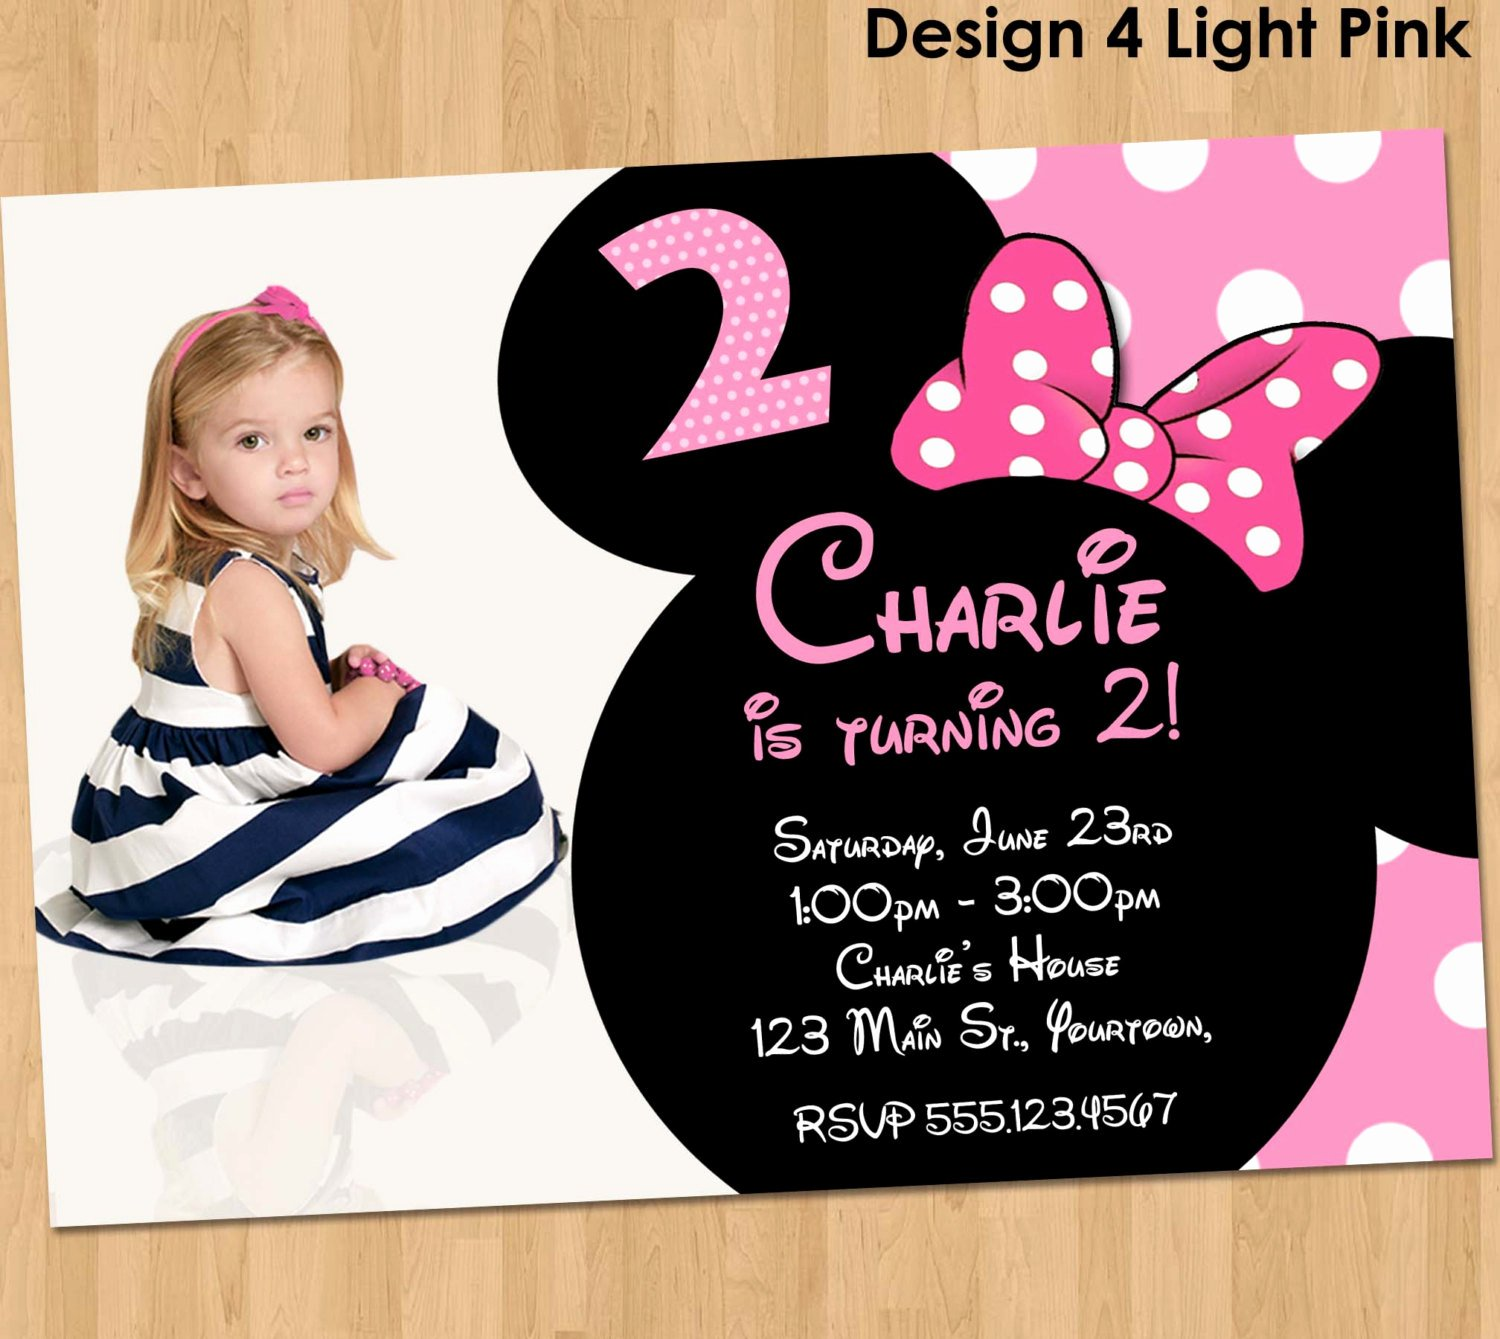 Custom Minnie Mouse Birthday Invitations Elegant Minnie Mouse Birthday Invitation Party Printable Custom